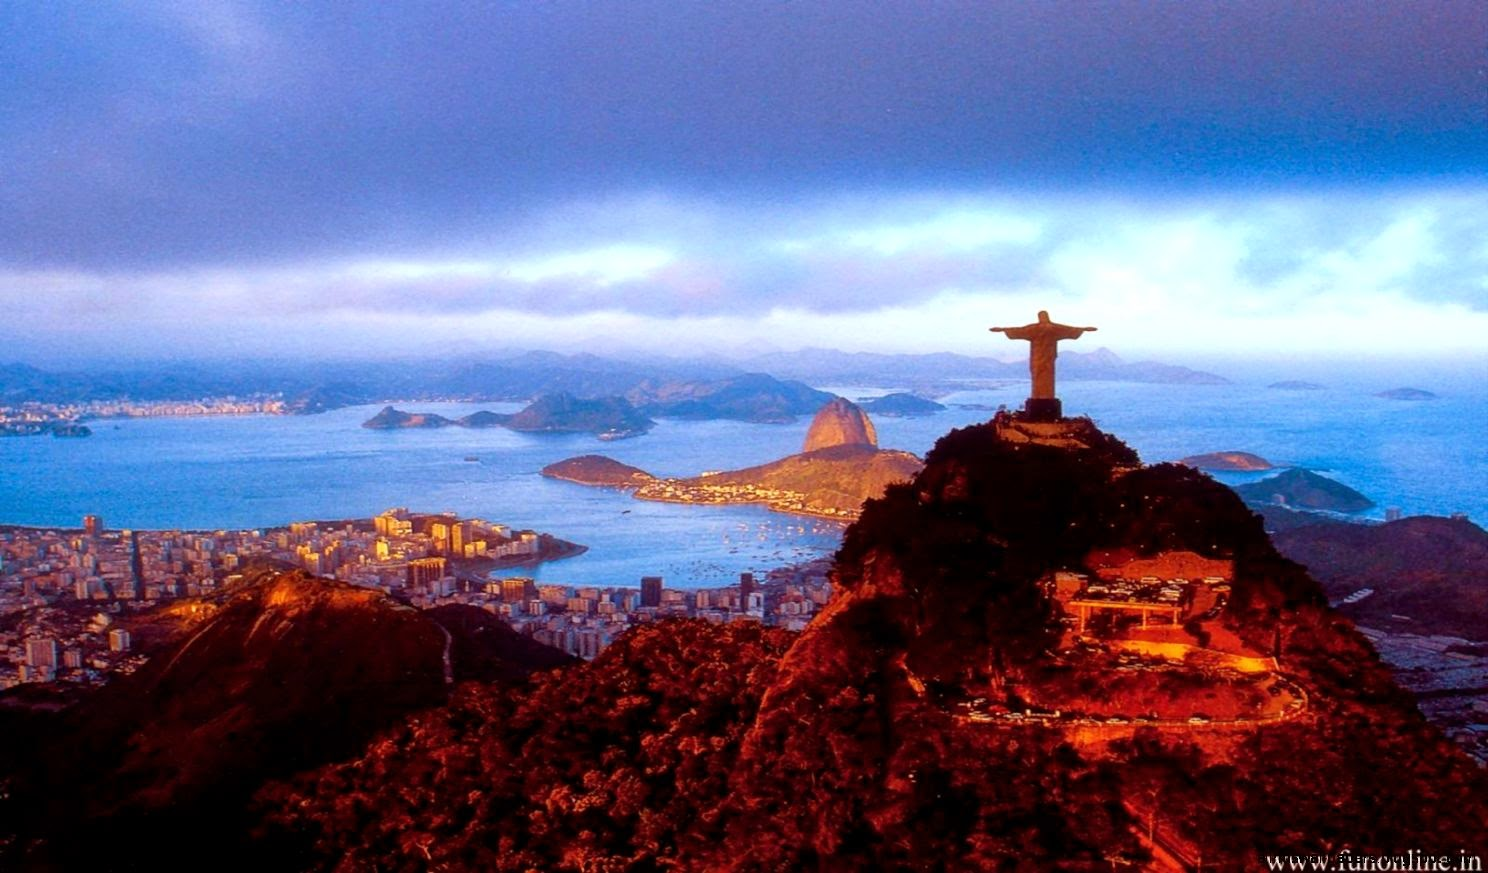 Rio de janeiro sunset wallpaper photos all hd wallpapers - Wallpaper photos ...